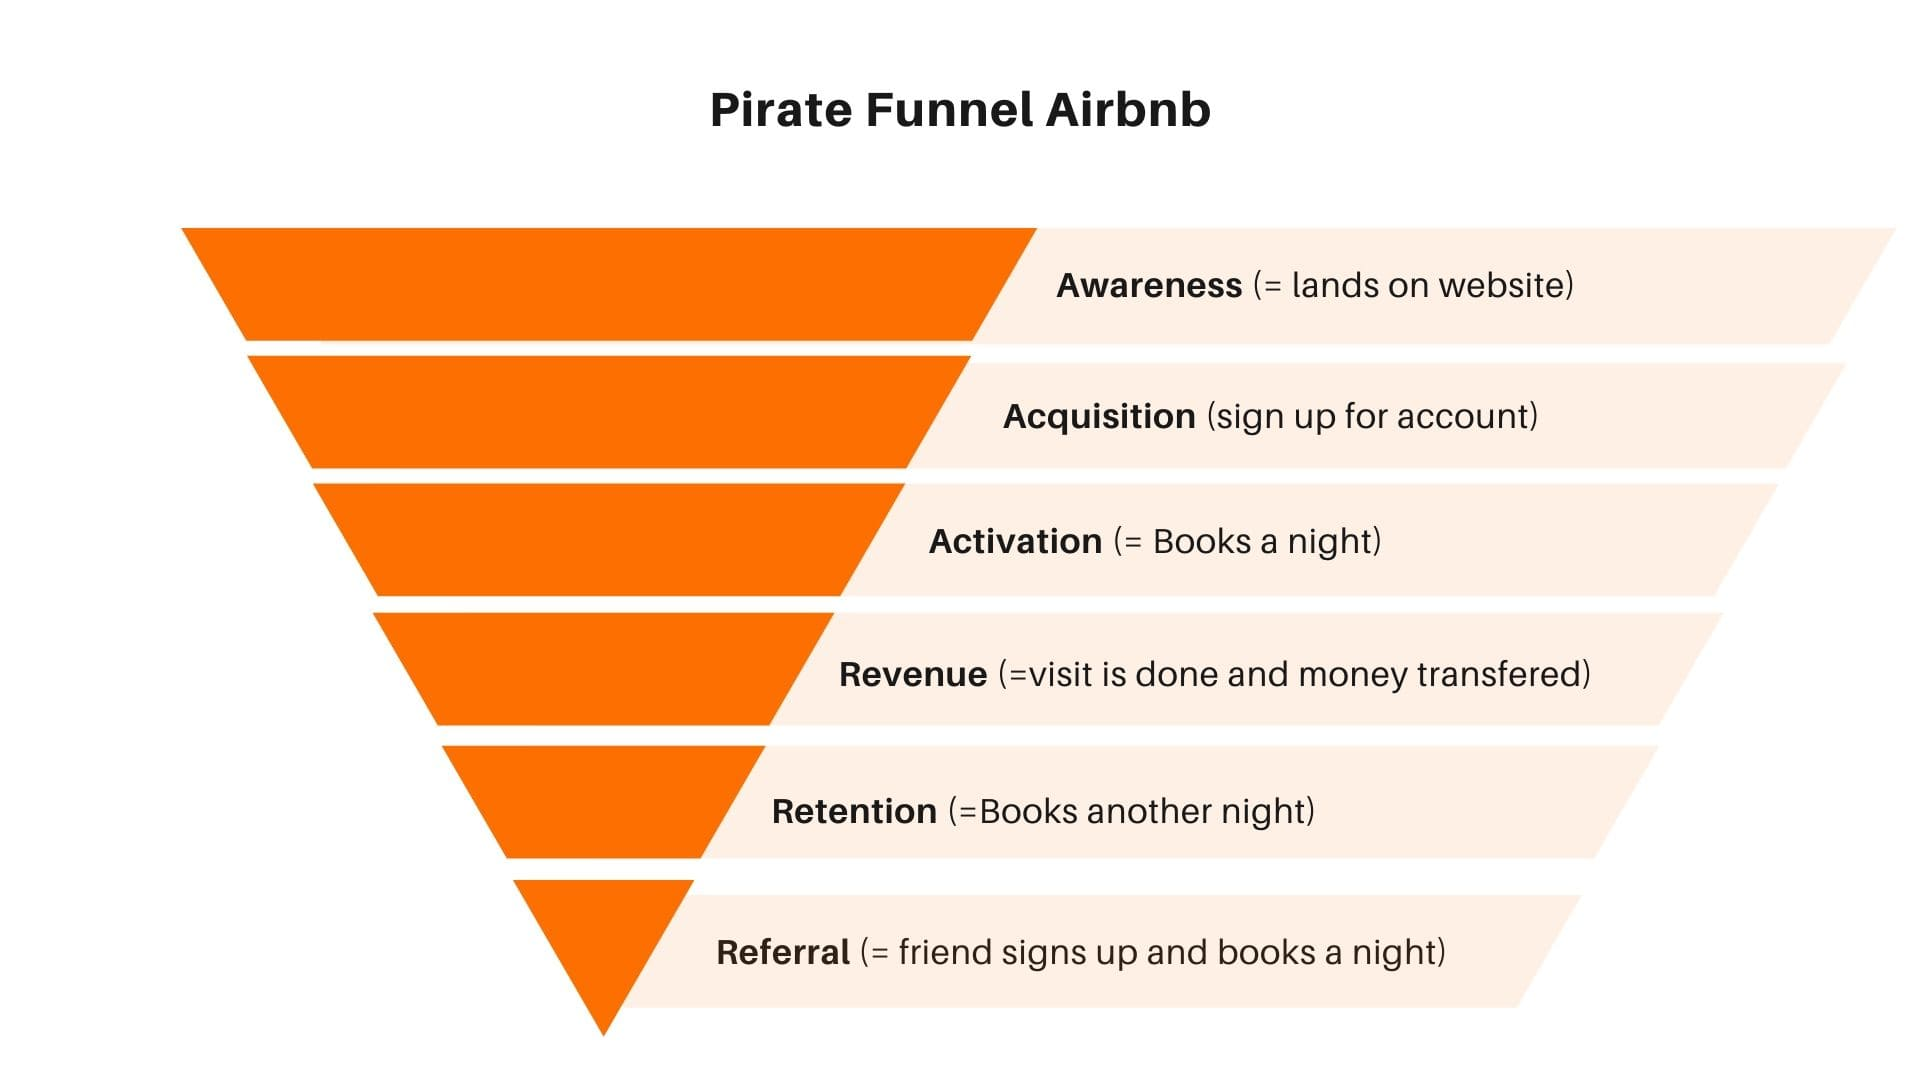 Pirate funnel Airbnb by Ricardo Ghekiere